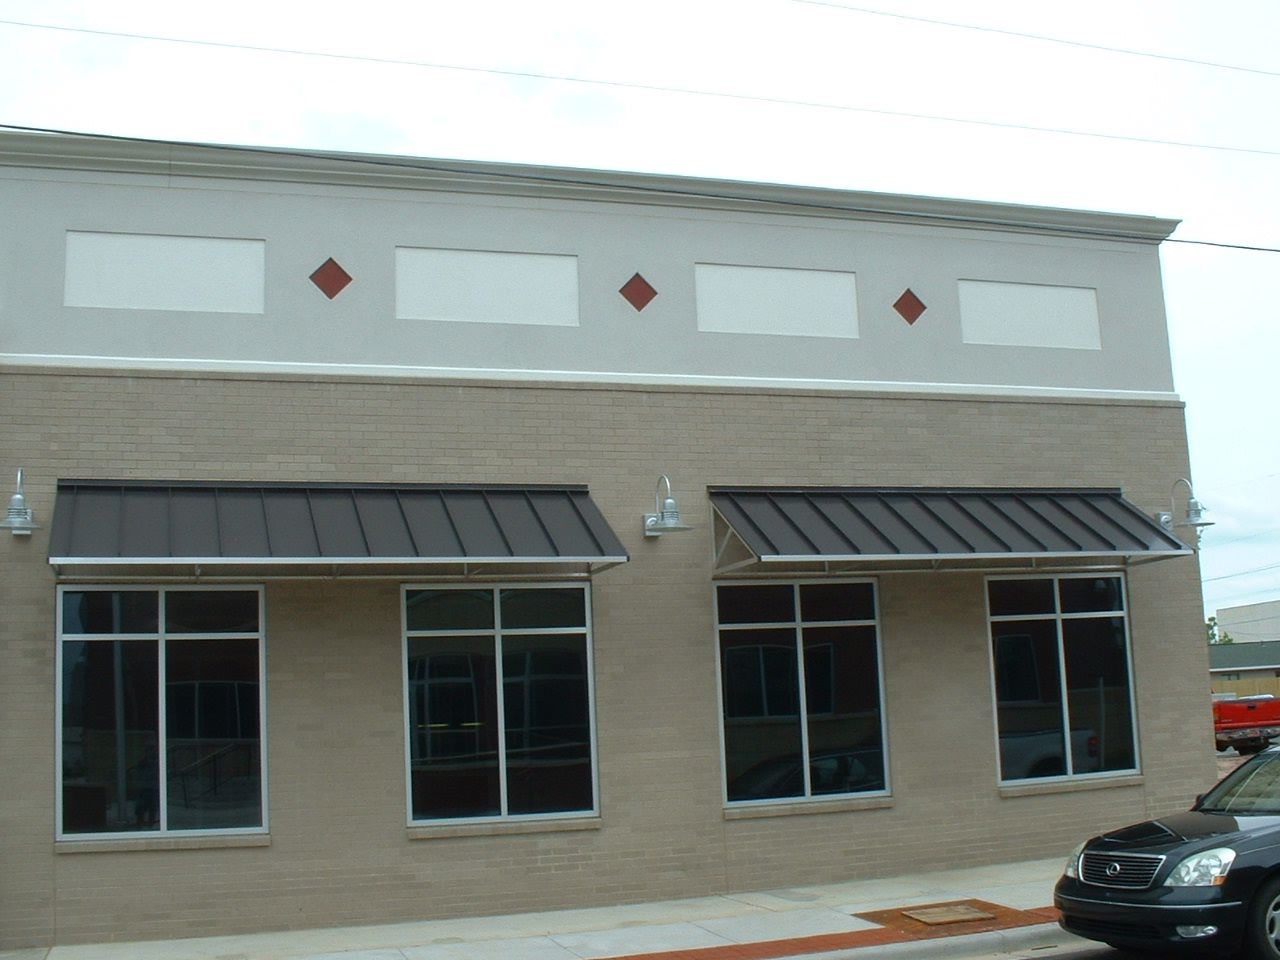 Commercial Building With Awnings Google Search